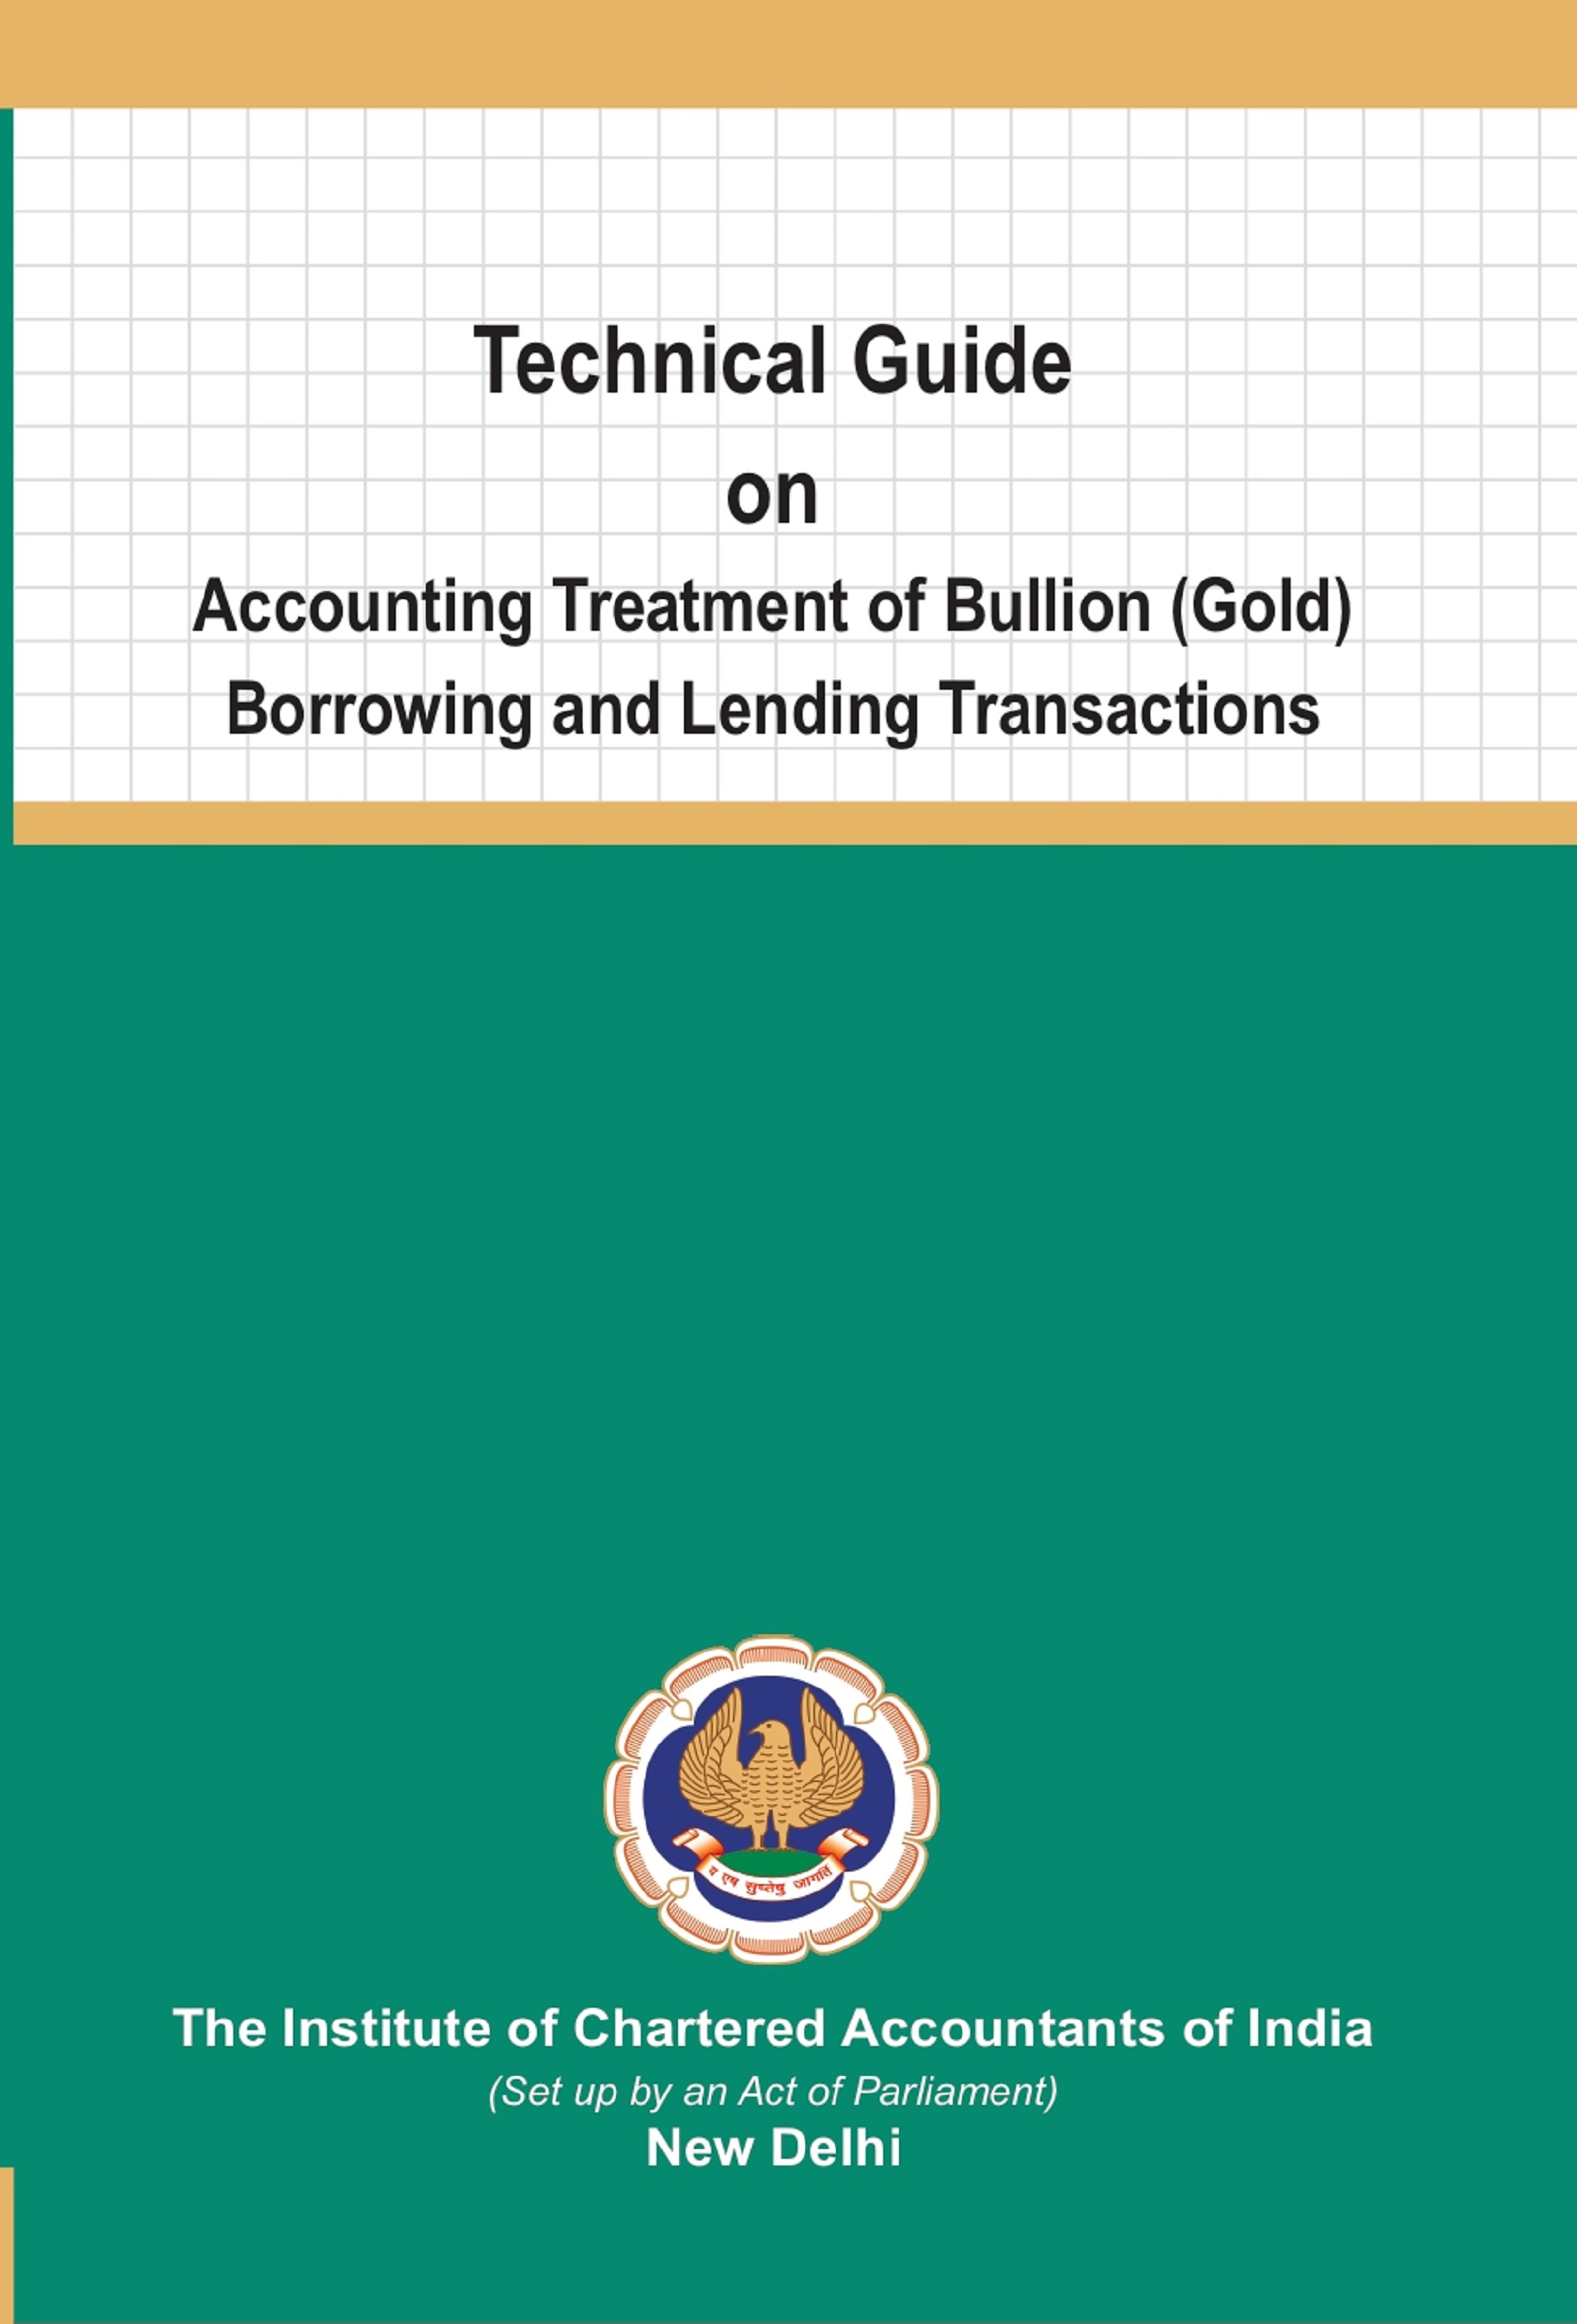 Technical Guide on Accounting Treatment of Bullion (Gold) Borrowing and Lending Transactions (2019)